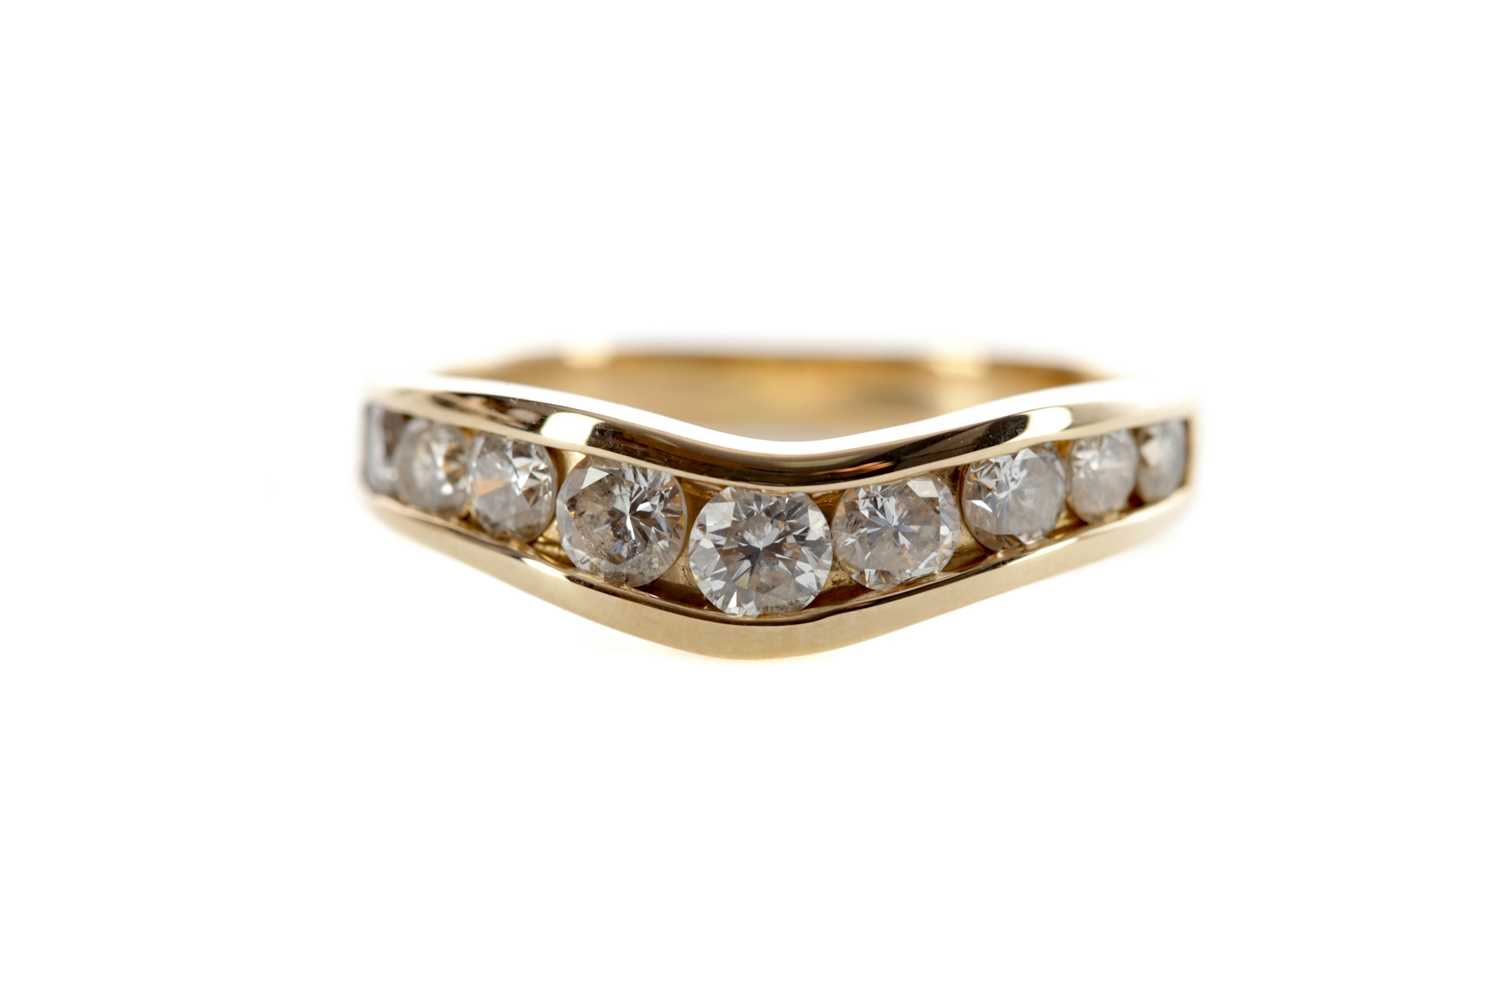 Lot 1310 - A DIAMOND NINE STONE RING